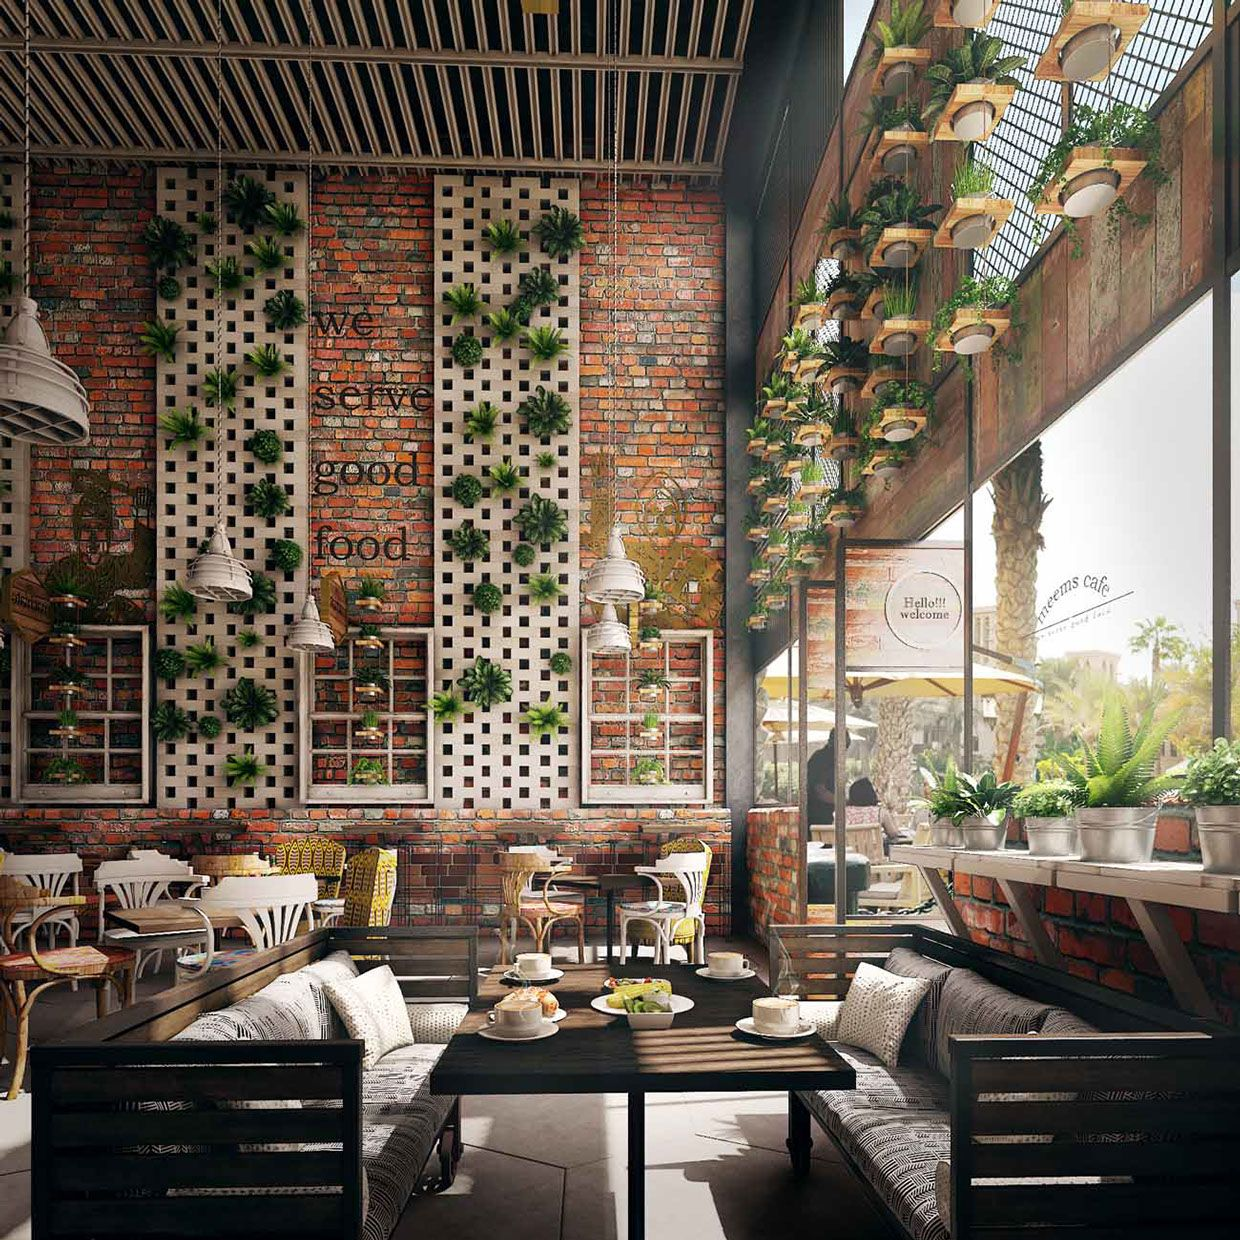 Latest Project - Cafe | office space | Pinterest | Cafes, Cafe ...